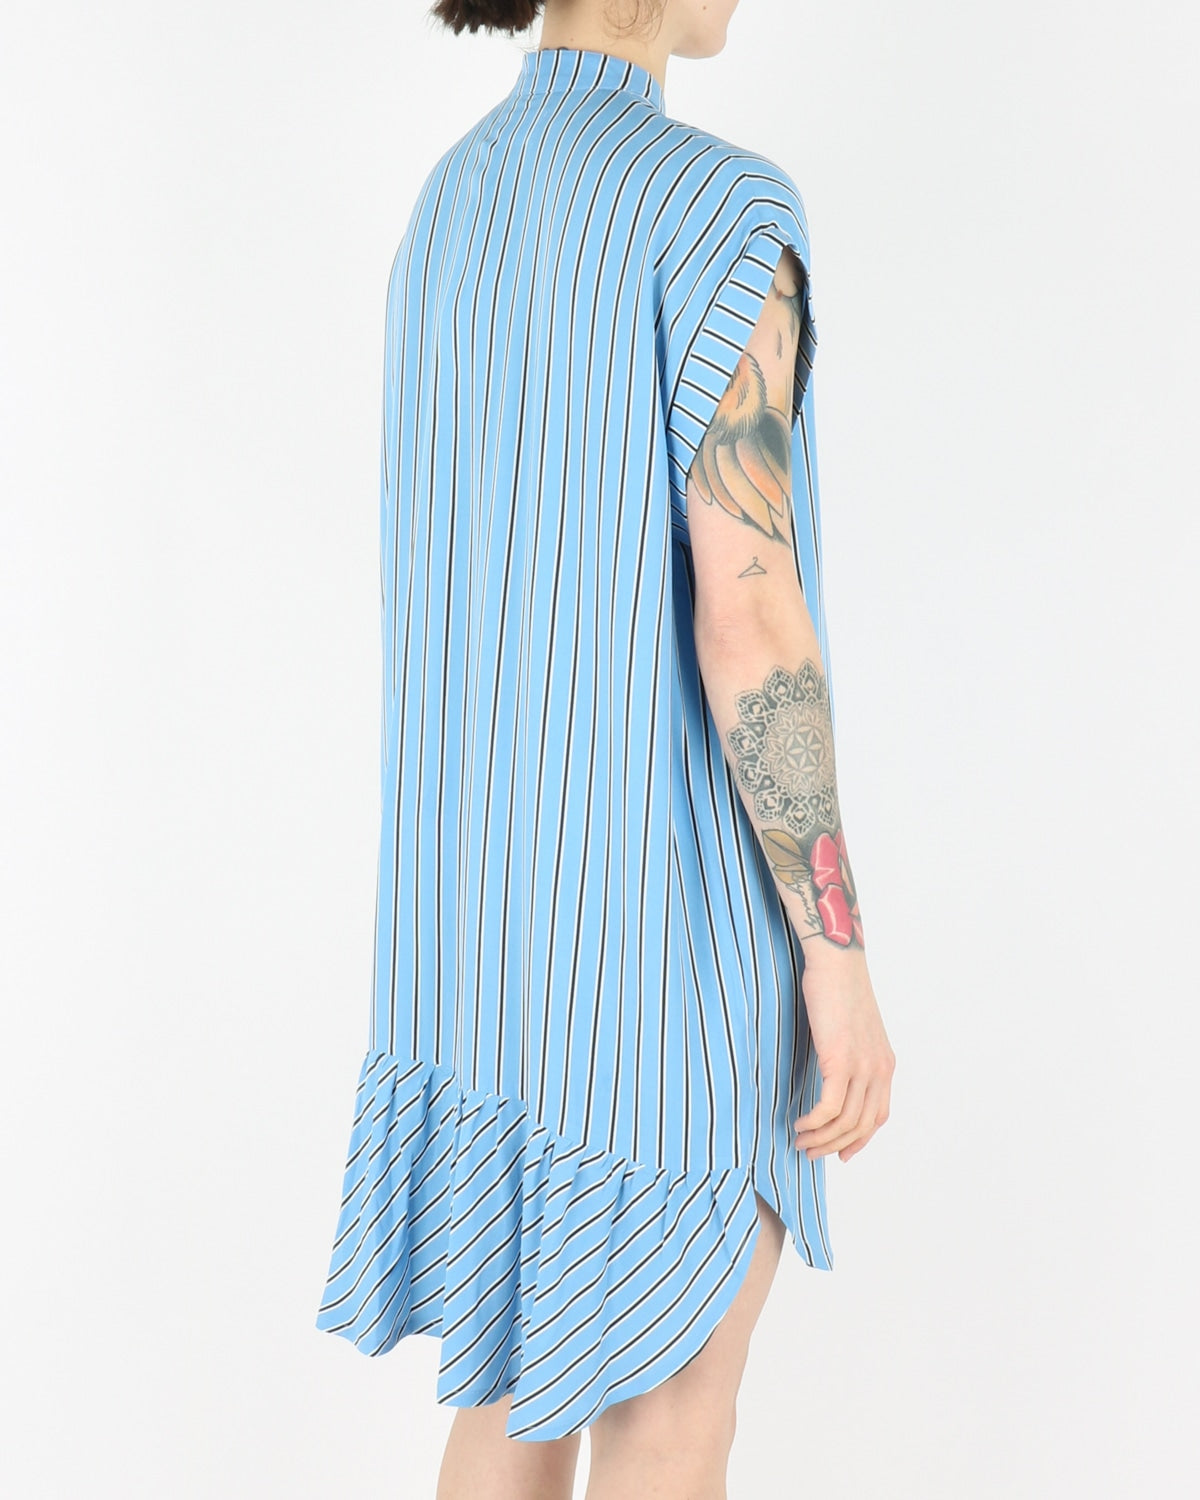 libertine libertine_exist dress_colonial blue stripe_view_3_3